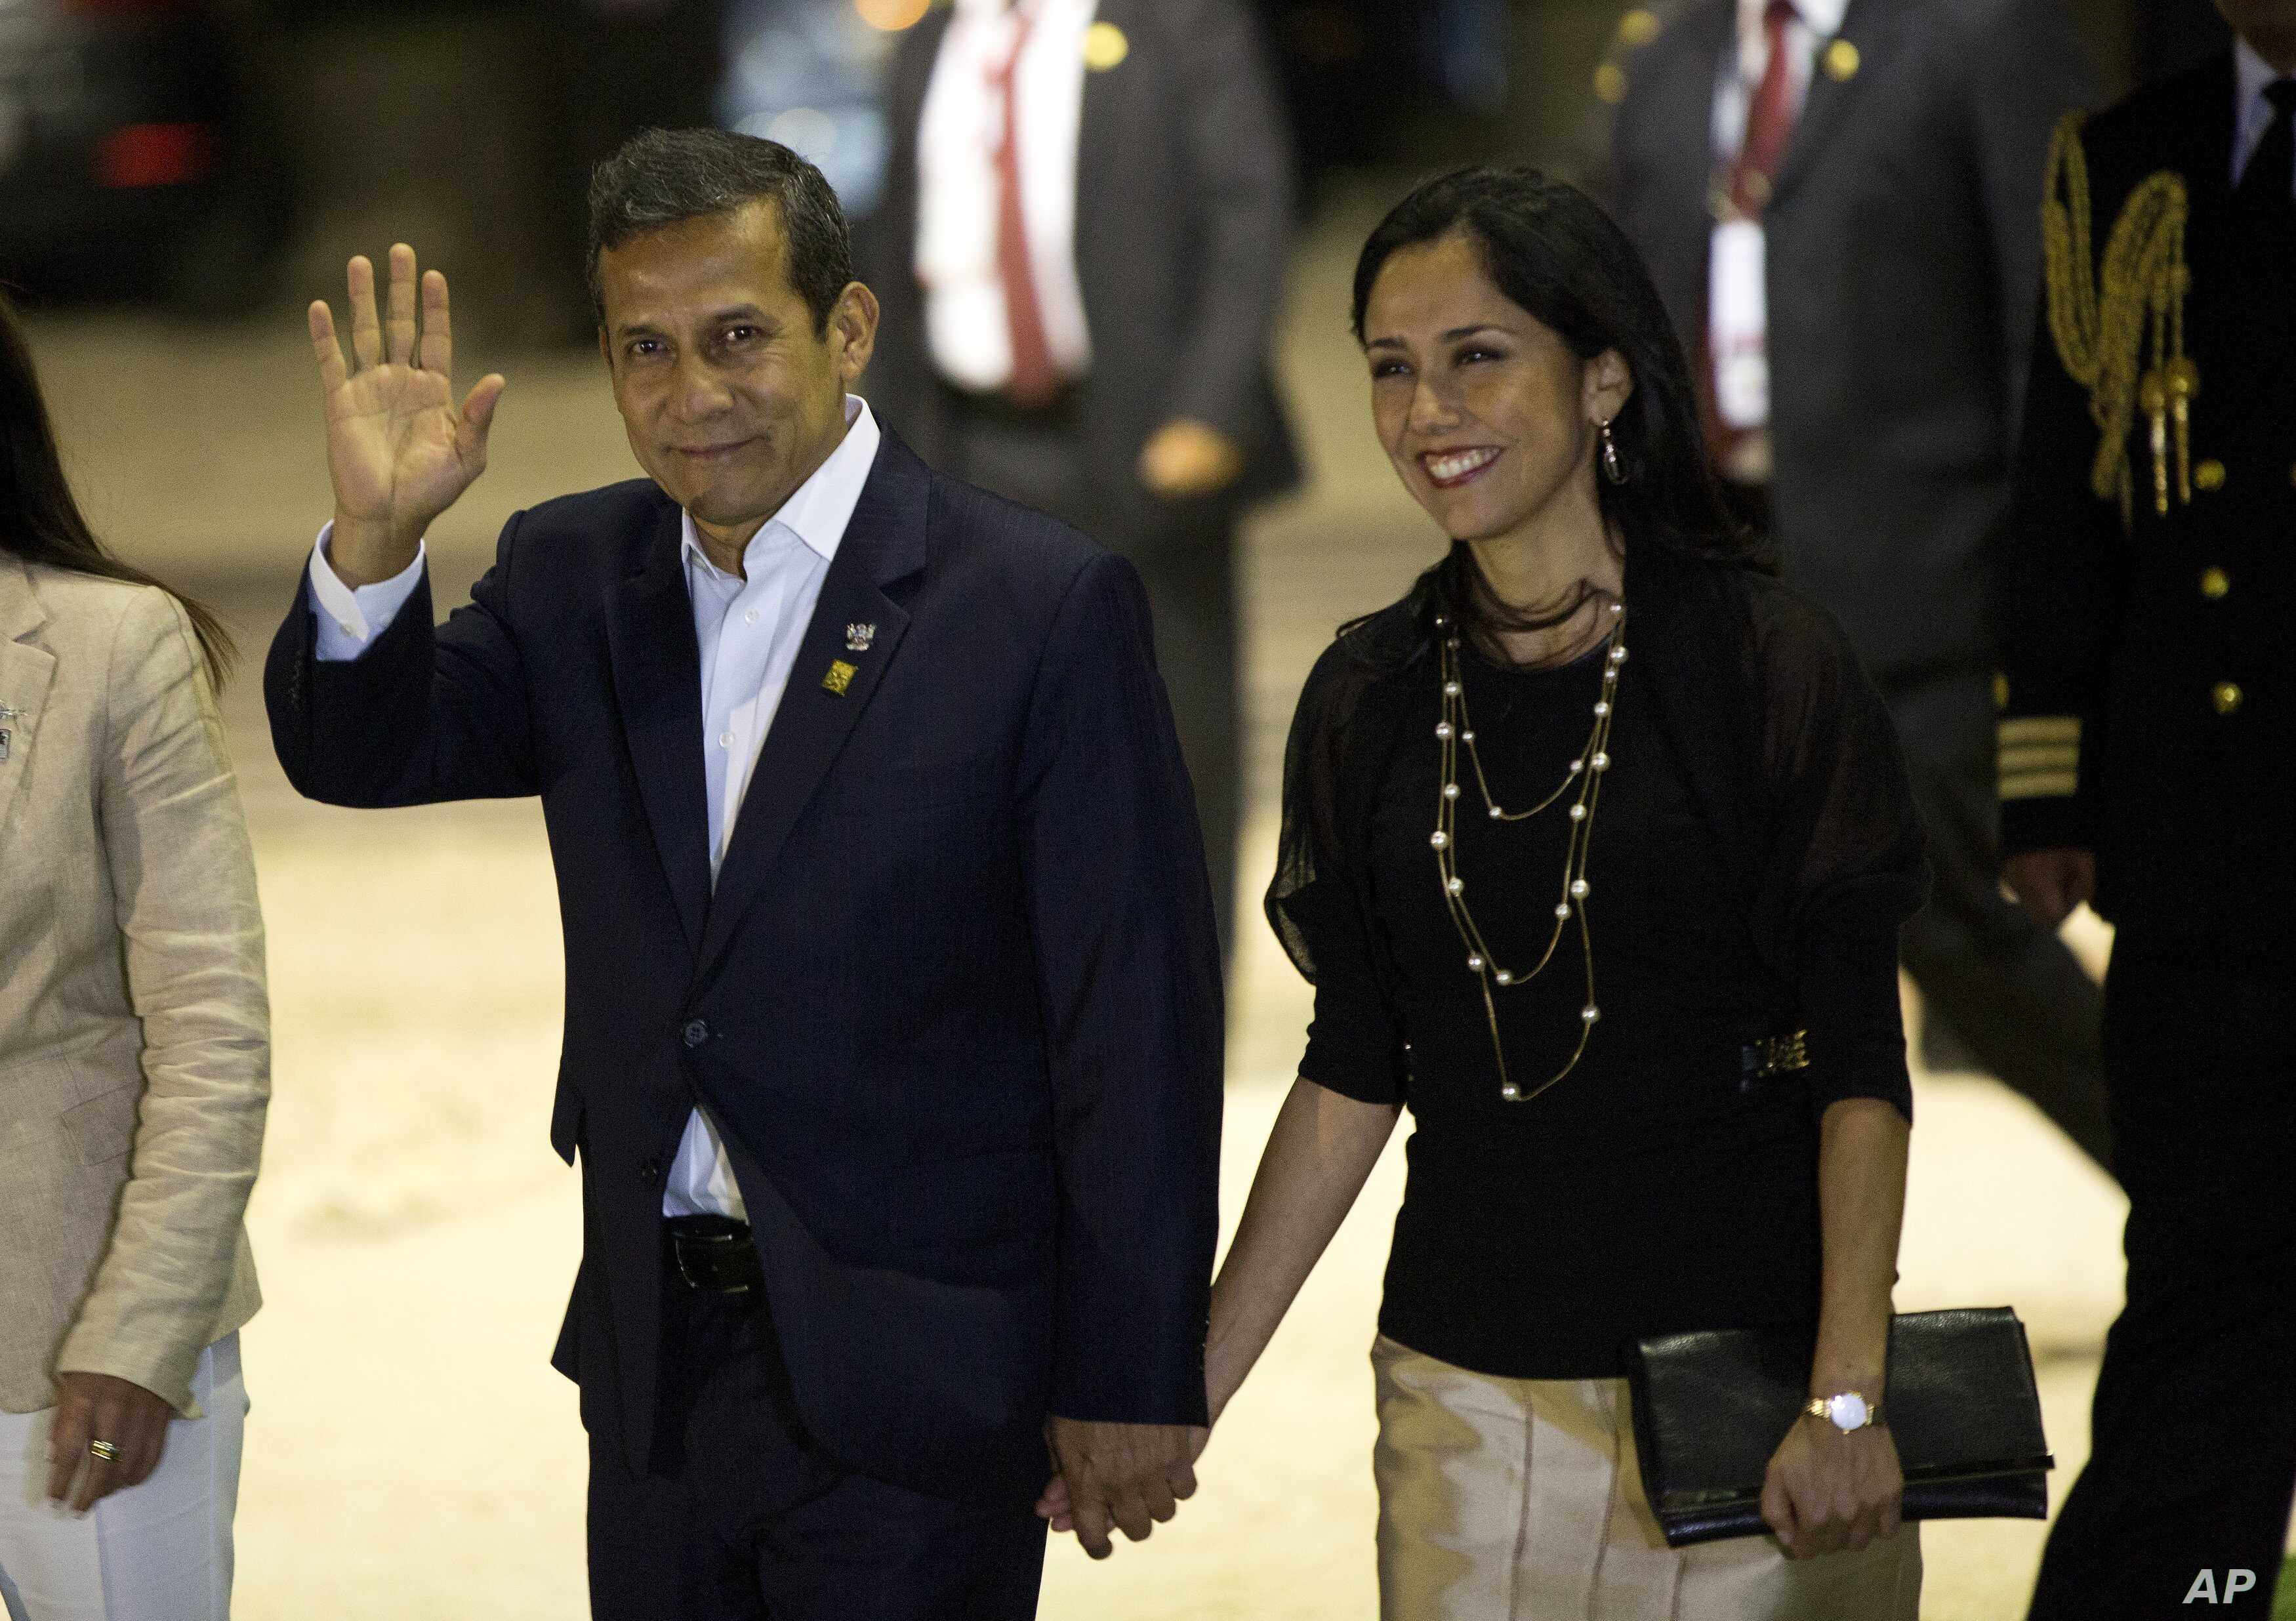 FILE - In this July 2, 2015, file photo, Peru's President Ollanta Humala waves to the press while arriving with his wife, Nadine Heredia, to the closing ceremony of a business summit in Paracas, Peru.